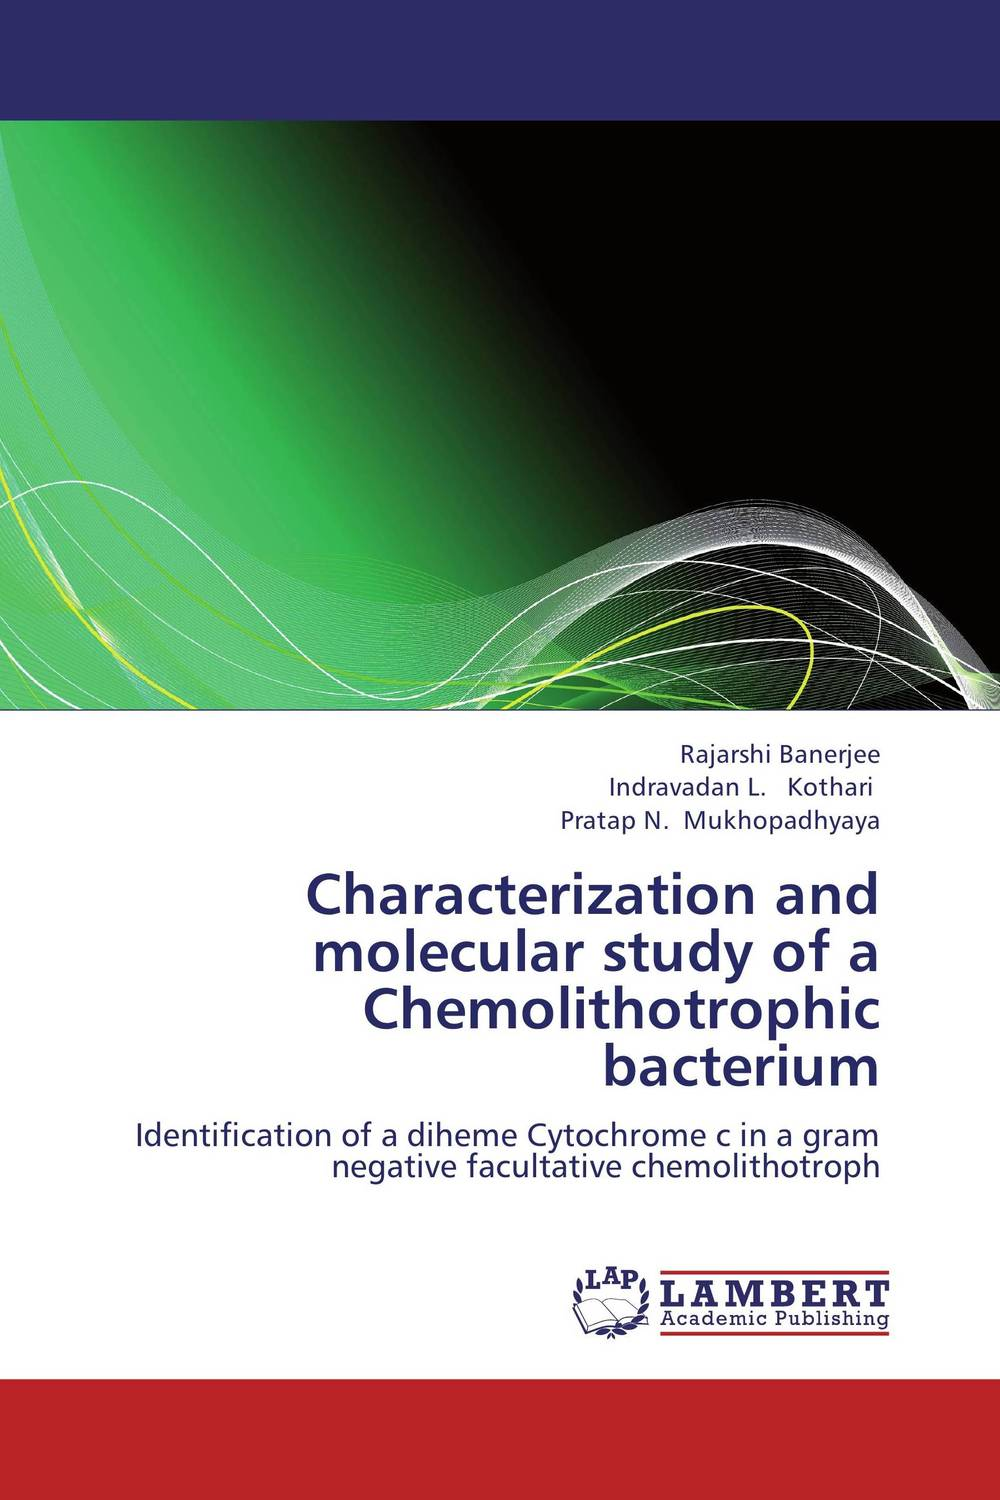 Characterization and molecular study of a Chemolithotrophic bacterium jyoti yadav arvind kumar and lalit kumar molecular characterization of lactamase e coli and klebsiella spp